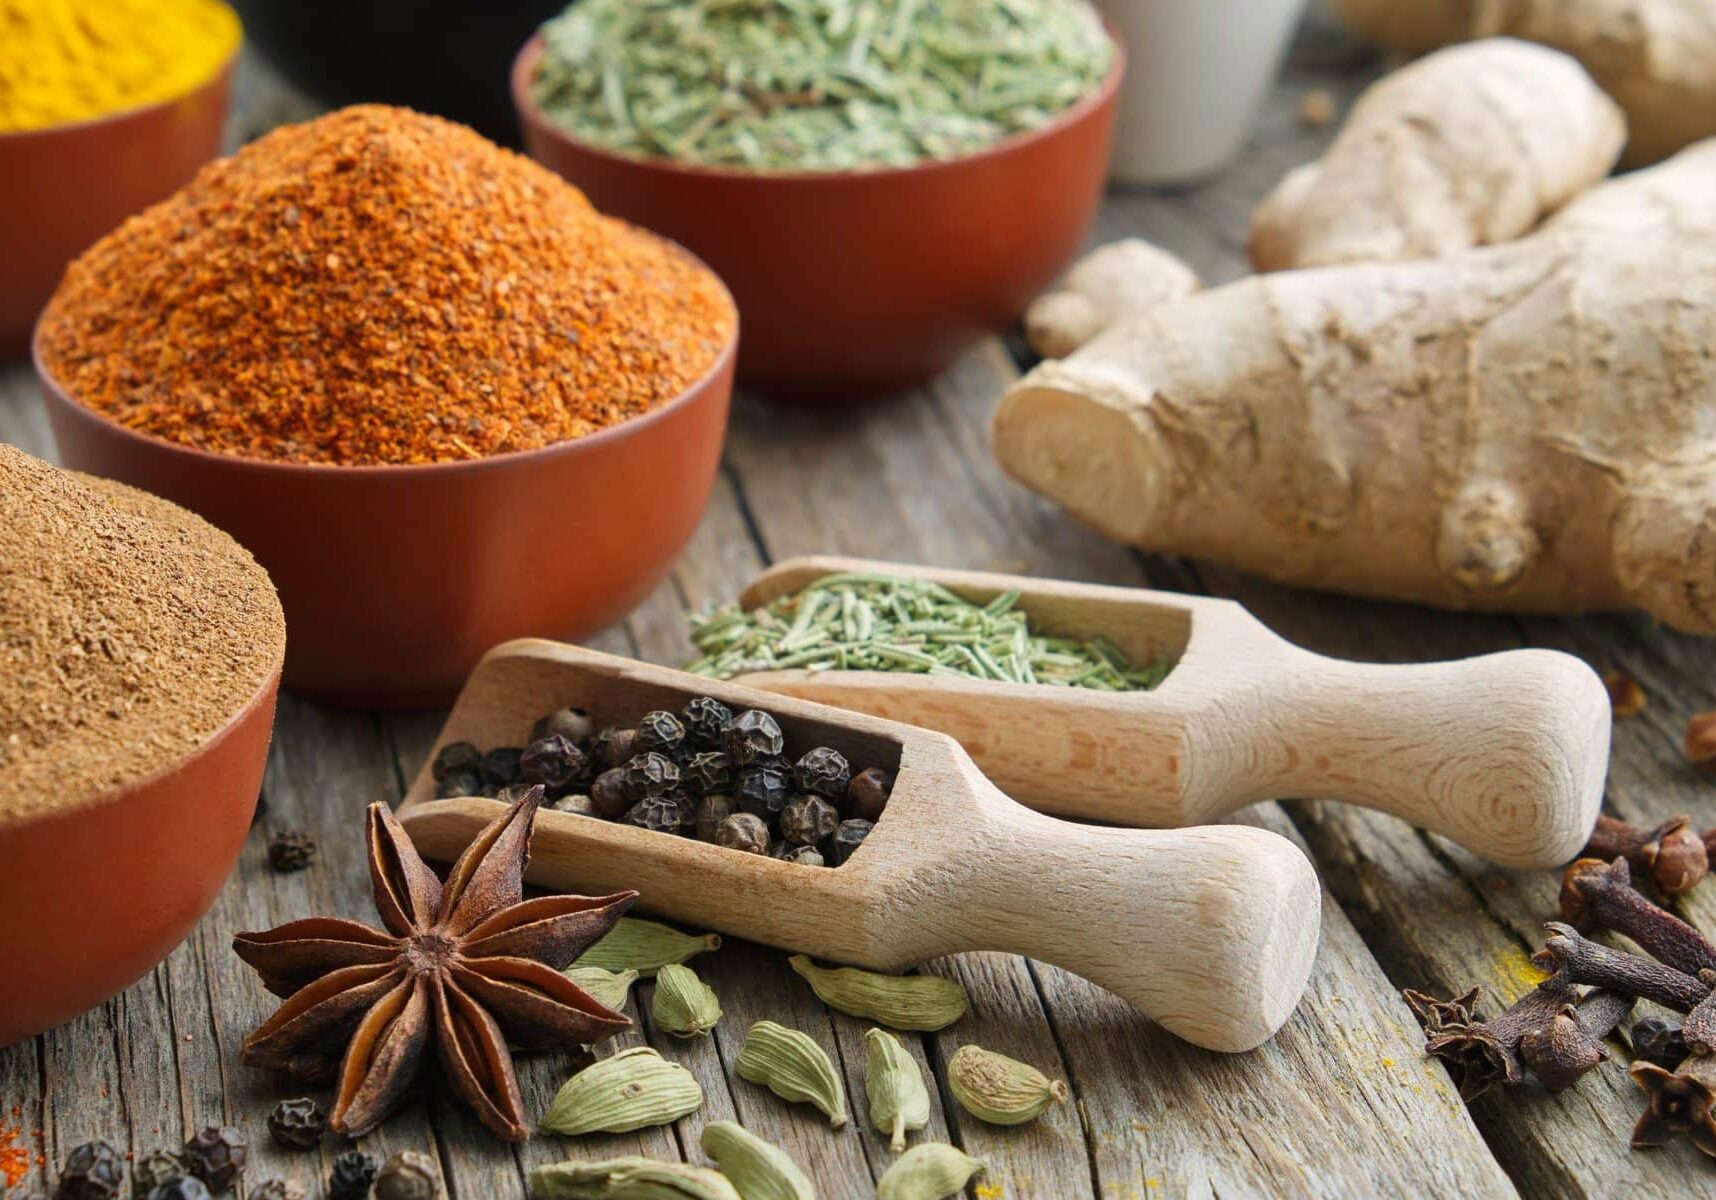 Aromatic spices and herbs. Ingredients for cooking. Ayurveda treatments.